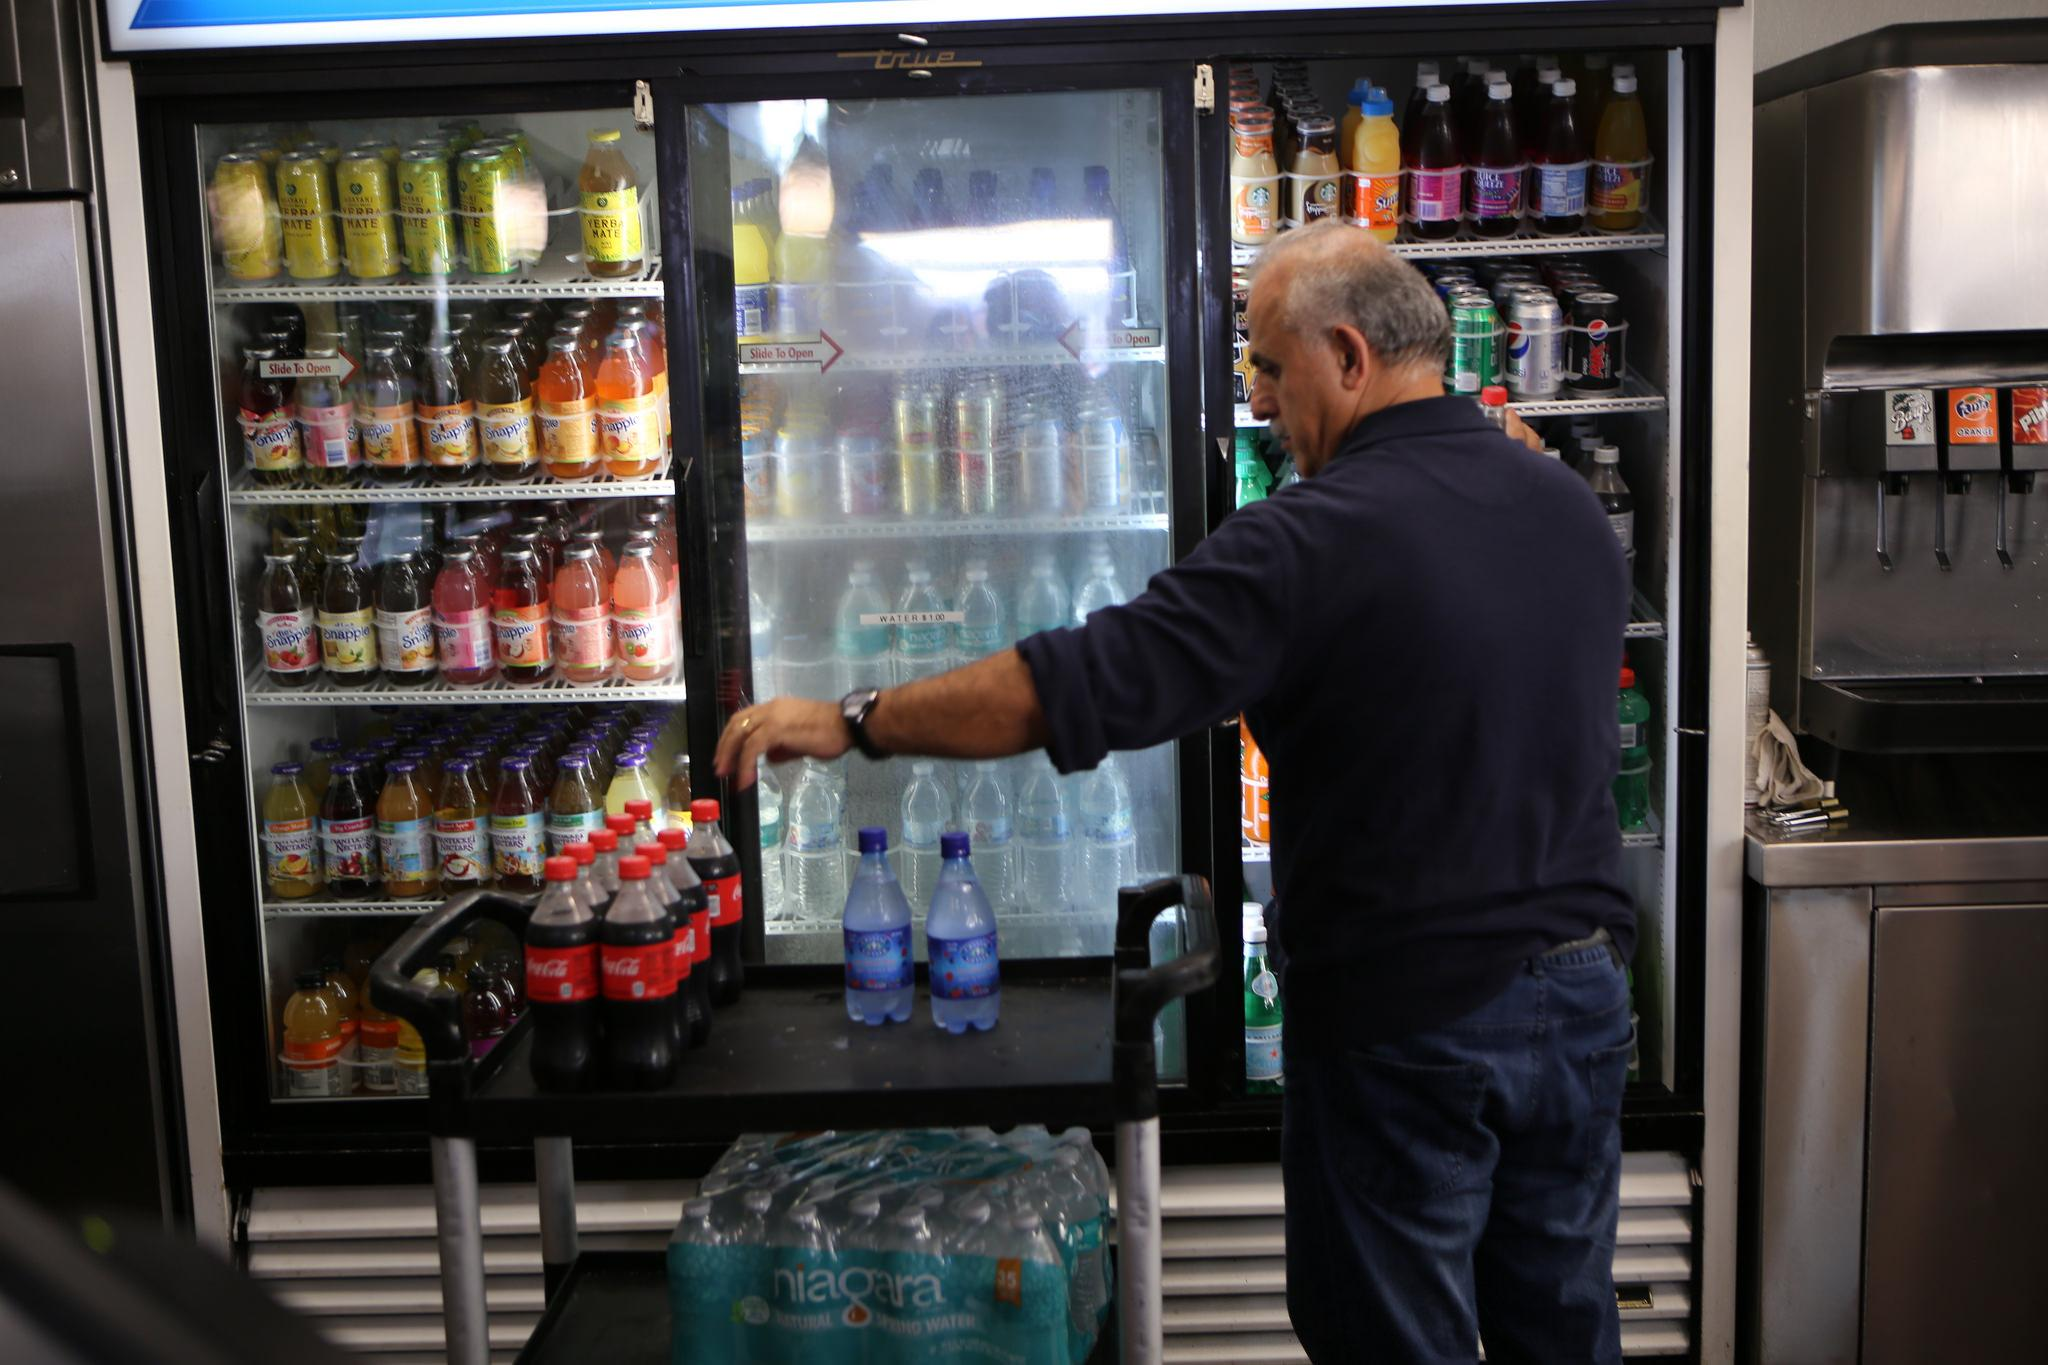 Nazih Ibrahim, a Gold Coast Grill & Catering employee, restocks beverages in the Gold Coast Grill & Catering vendor store at SF State Friday Oct. 2. The University Corporation (UCorp) is looking to establish an exclusive partnership with SF State regarding pouring rights to beverages on campus according to UCorp's recent proposal. (Joel Angel Juárez / Xpress)